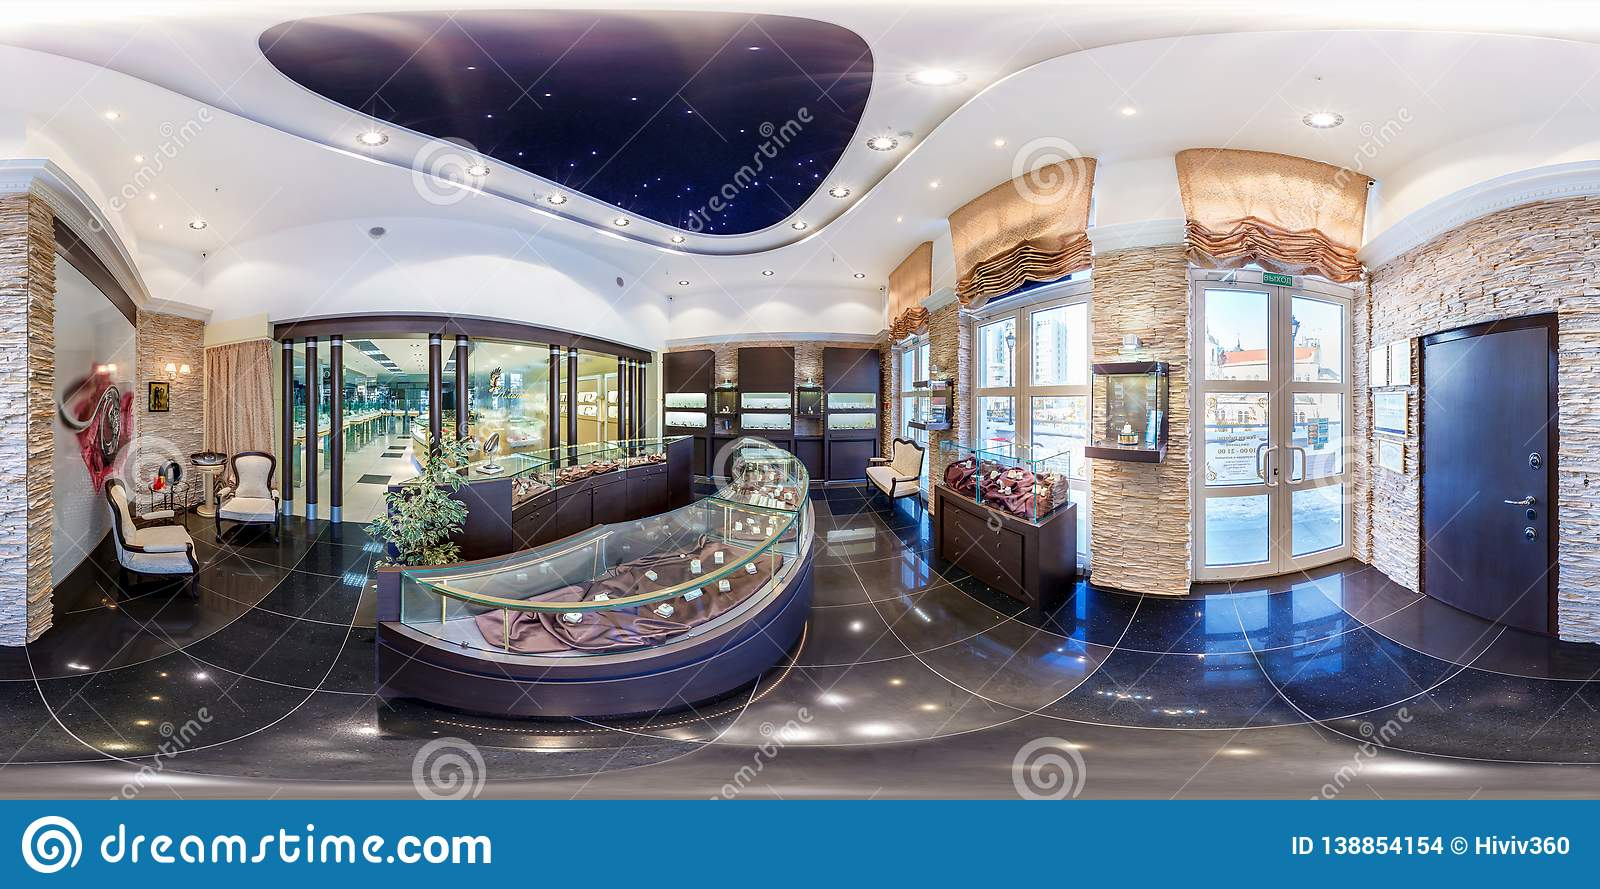 MINSK, BELARUS - FEBRUARY, 2013: Full seamless panorama 360 angle degrees view inside interior of luxury jewelry store in